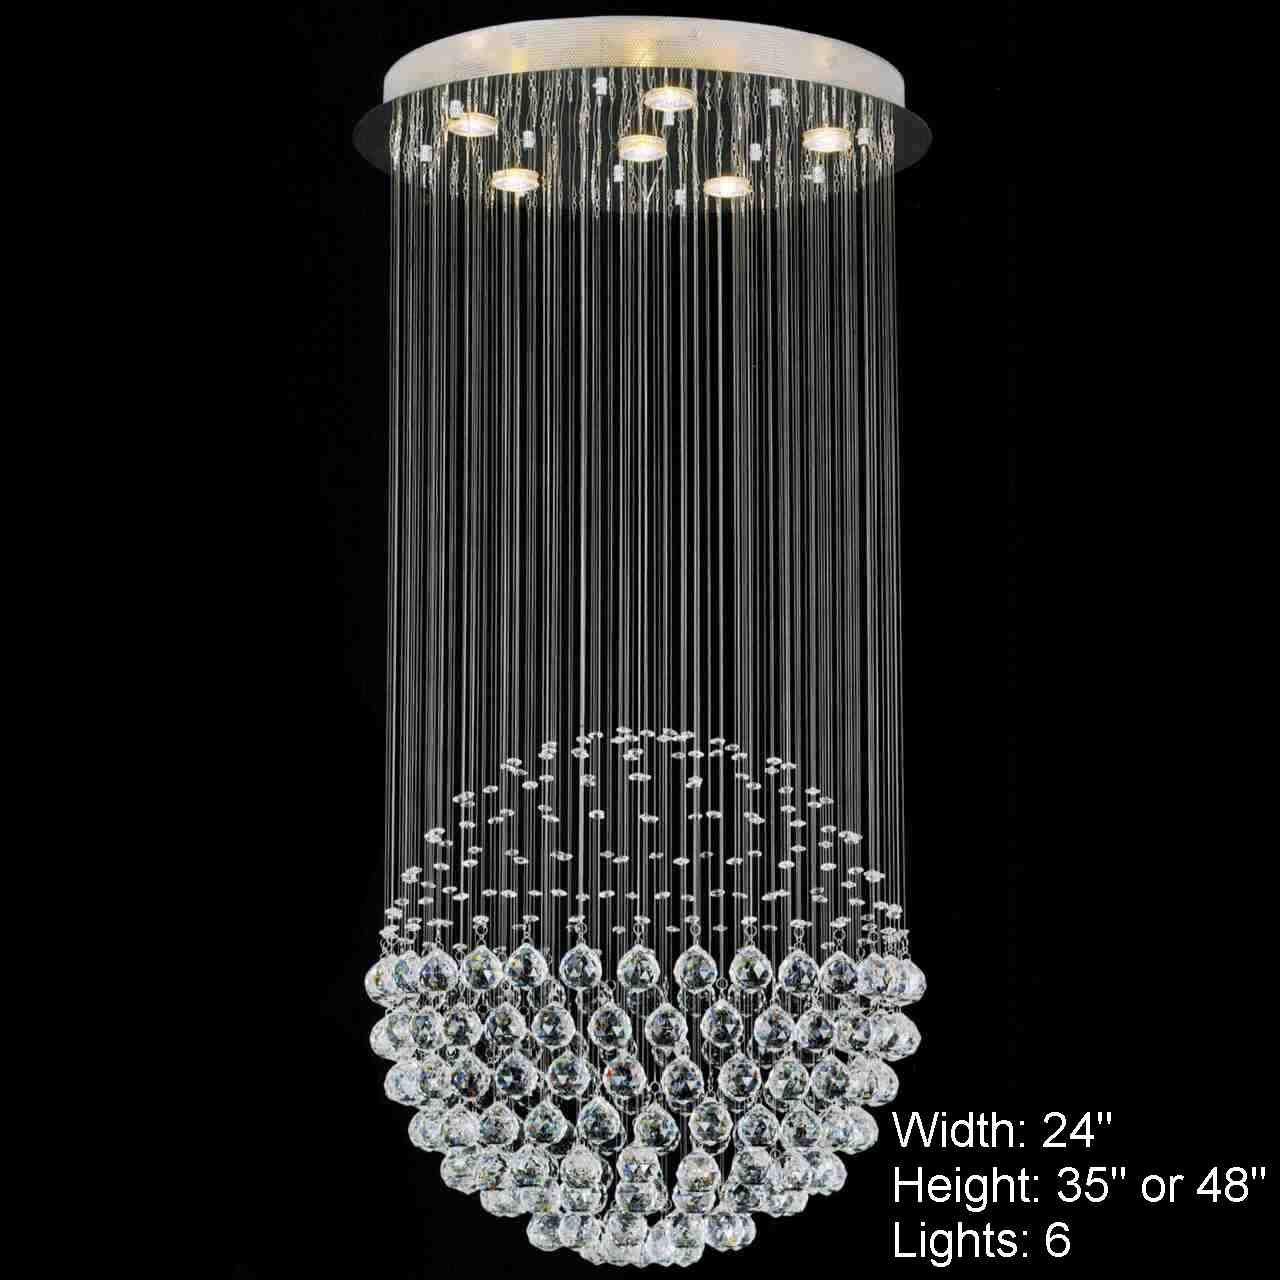 Brizzo lighting stores sphere modern crystal chandelier large picture of sphere modern crystal chandelier large mirror stainless steel base 6 lights arubaitofo Gallery